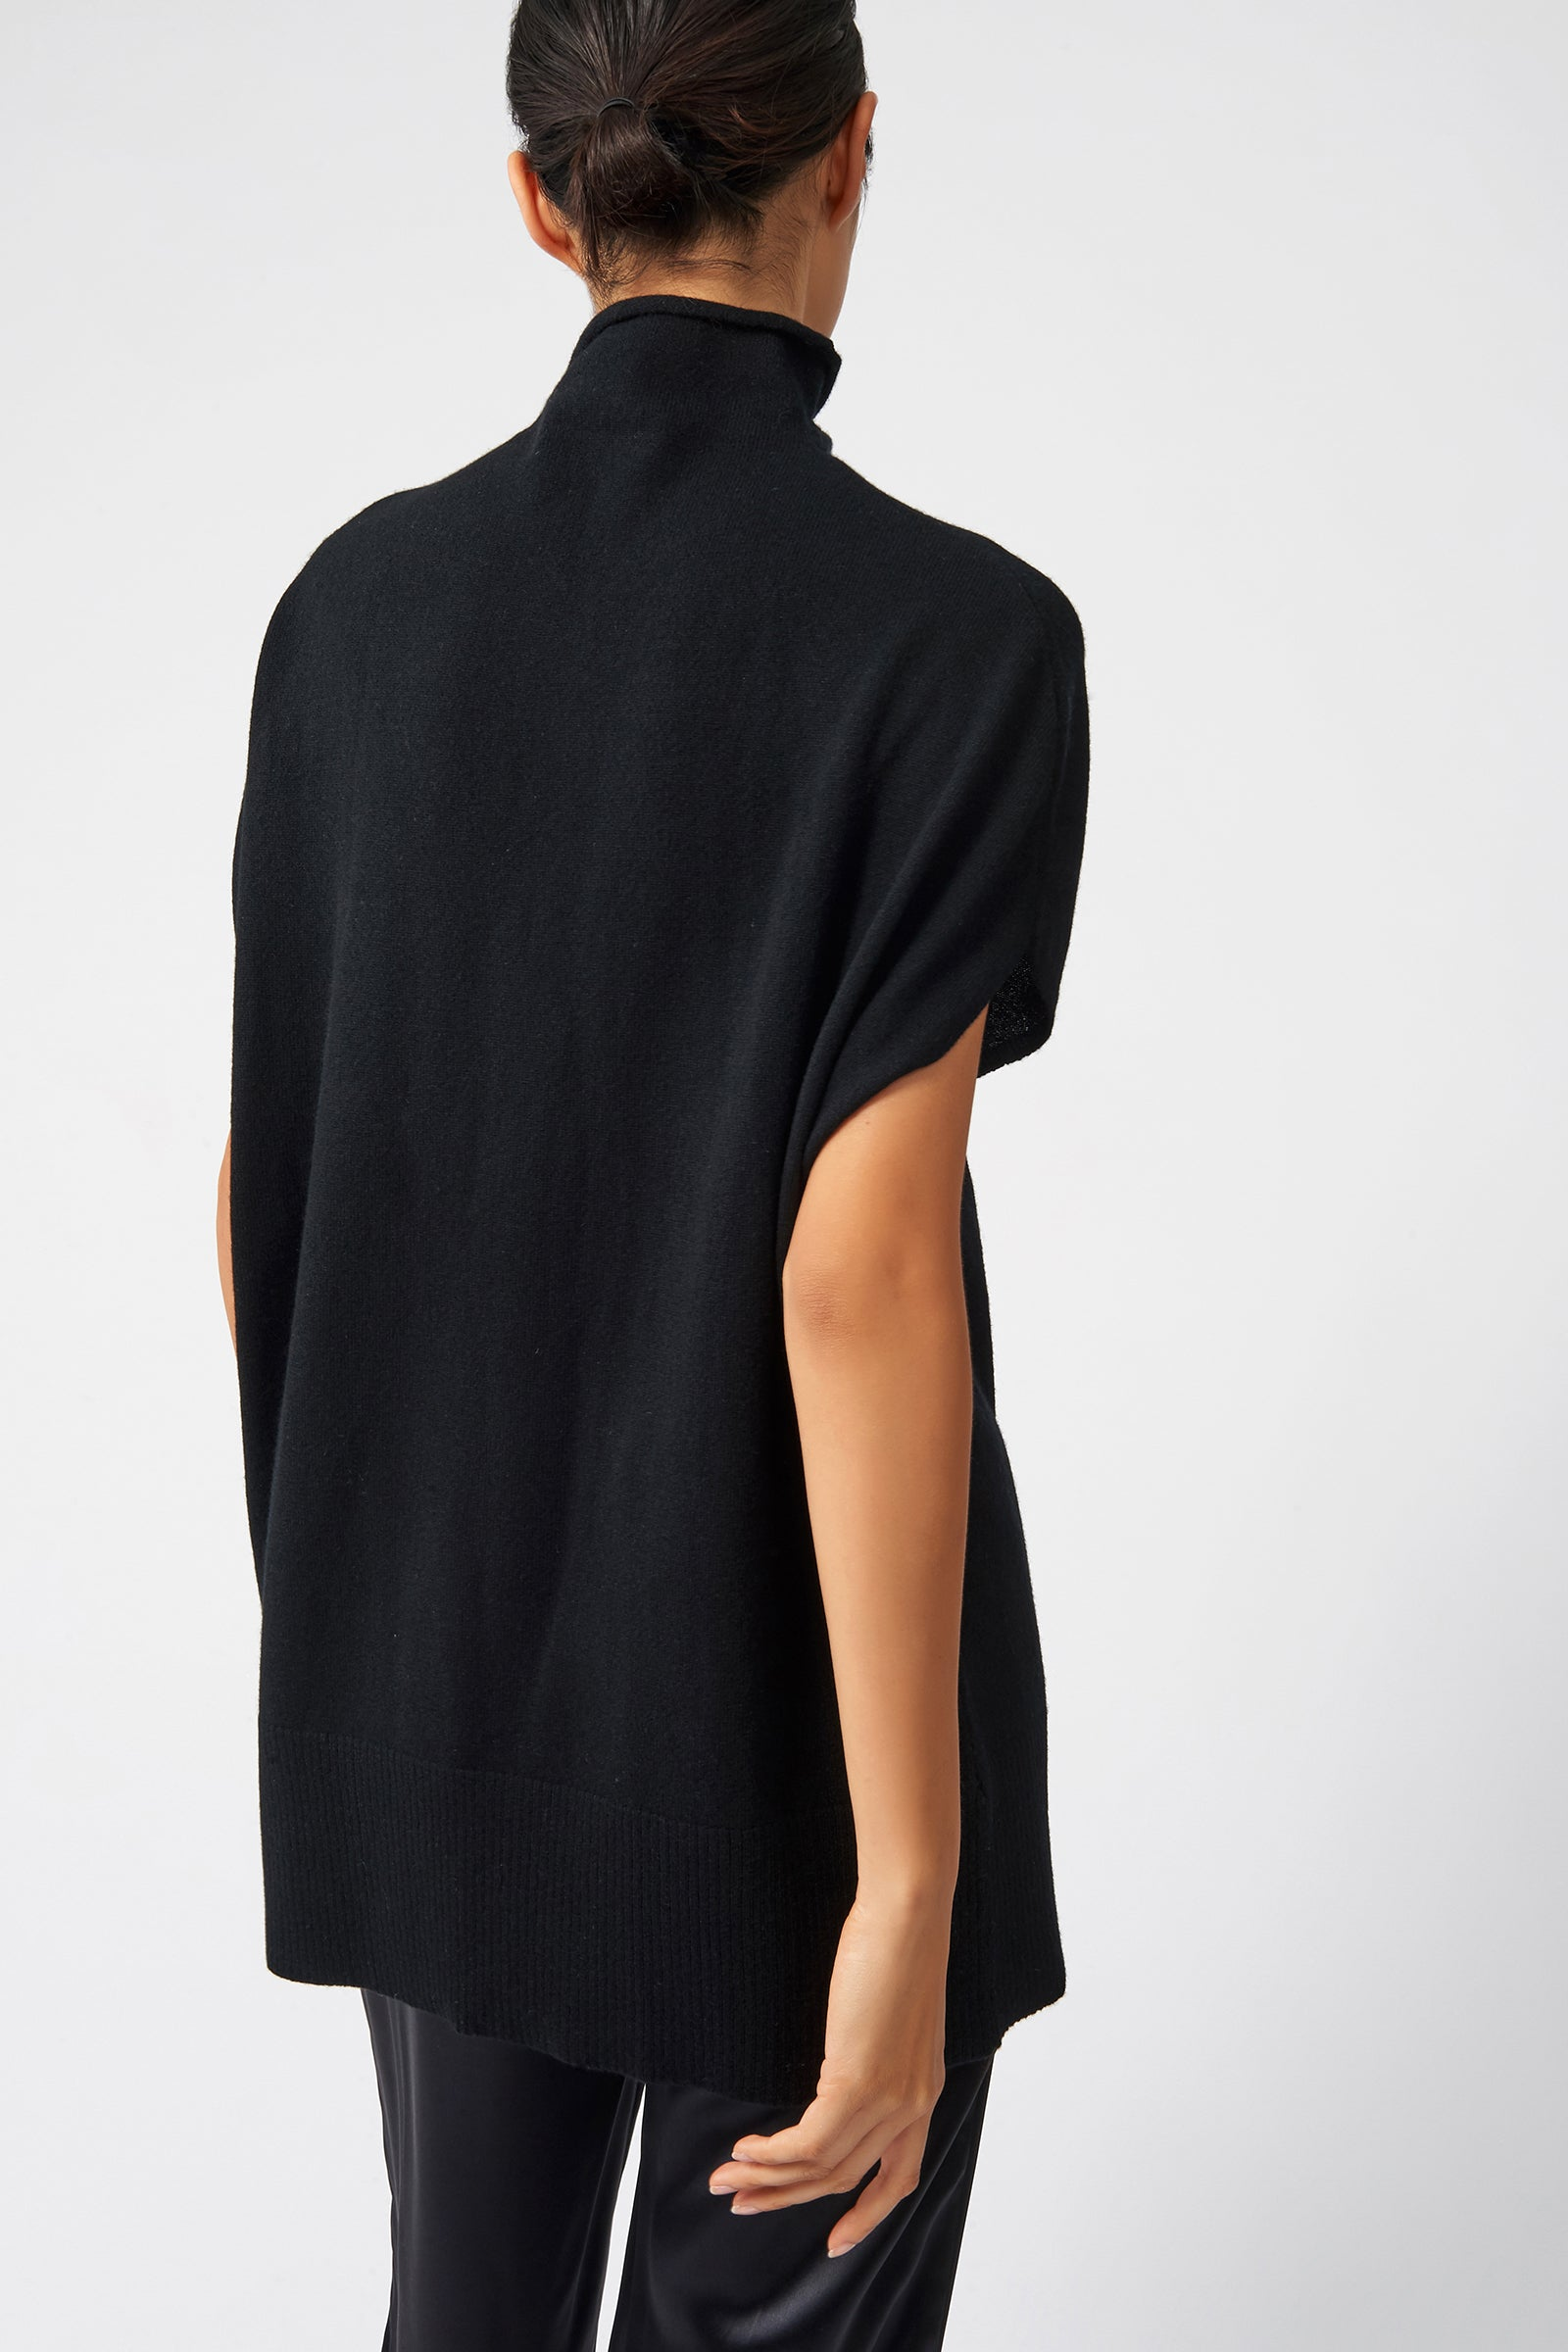 Kal Rieman Cashmere Funnelneck in Black on Model Back View